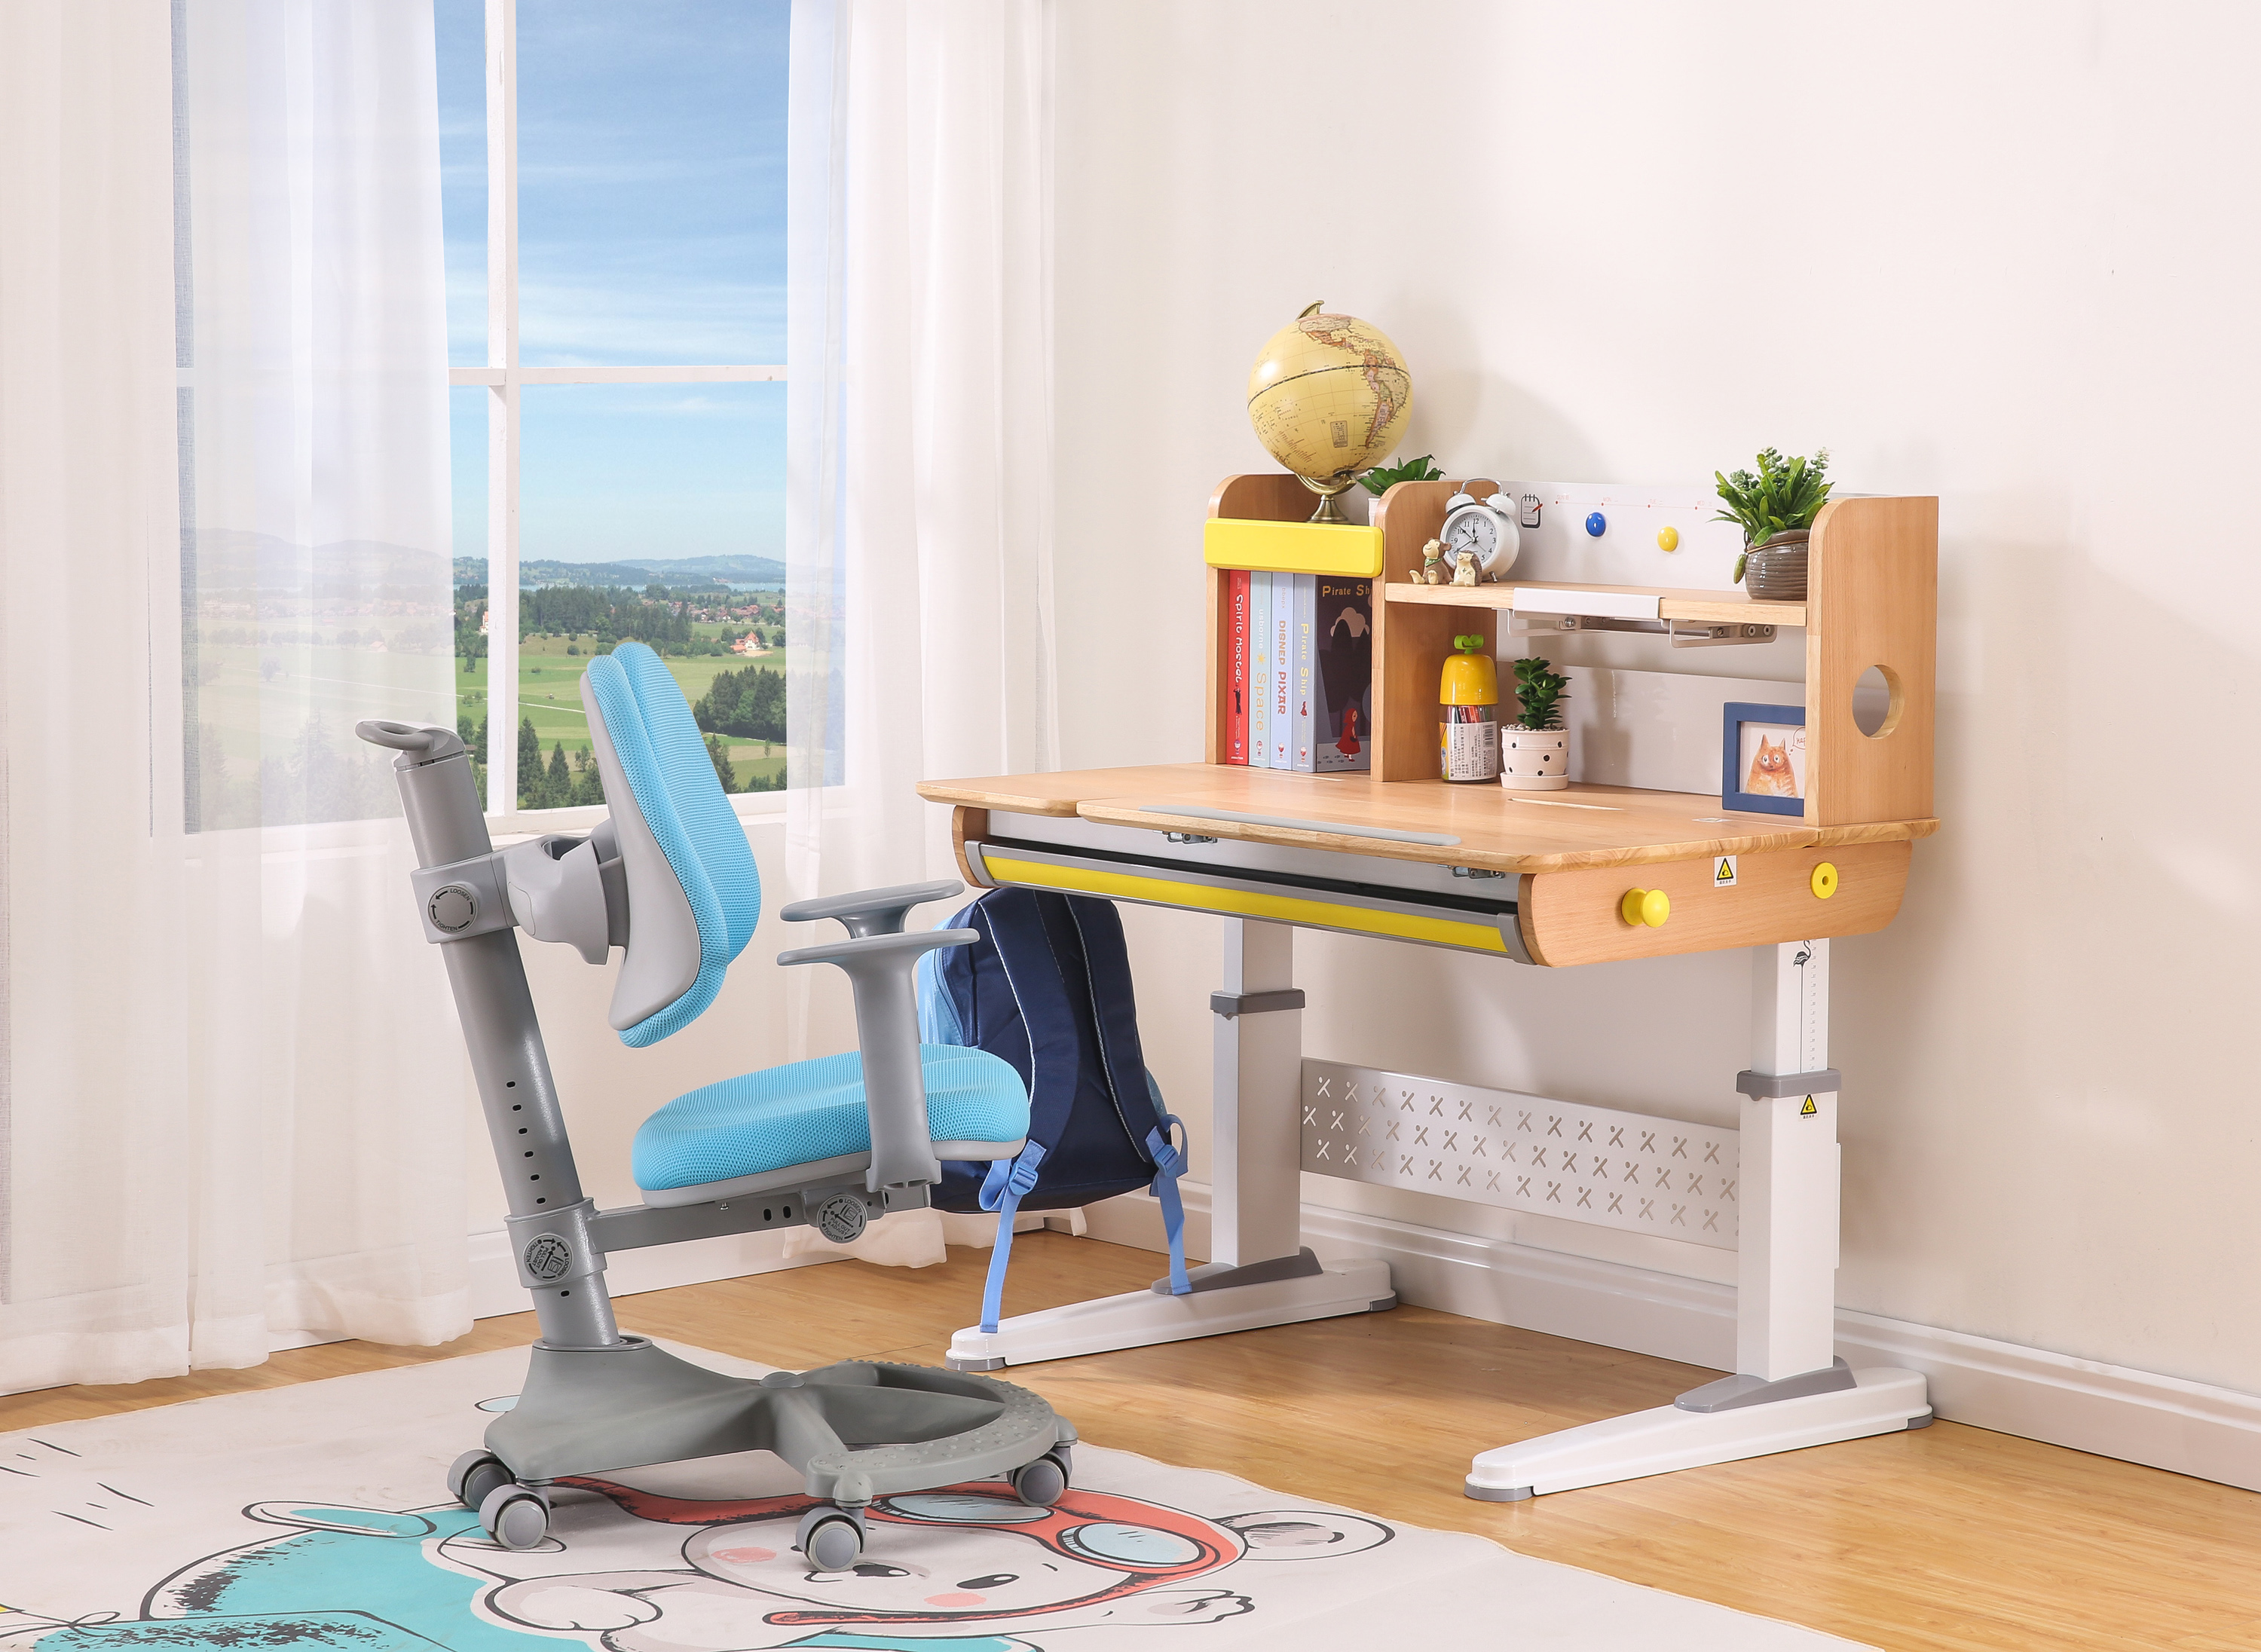 Image of: Multi Functional Children S Desk And Chair Set Kids Adjustable Desk Set Kids Study Desk Buy Los Ninos Ajustable Juego De Escritorio Y Silla Conjunto Product On Alibaba Com